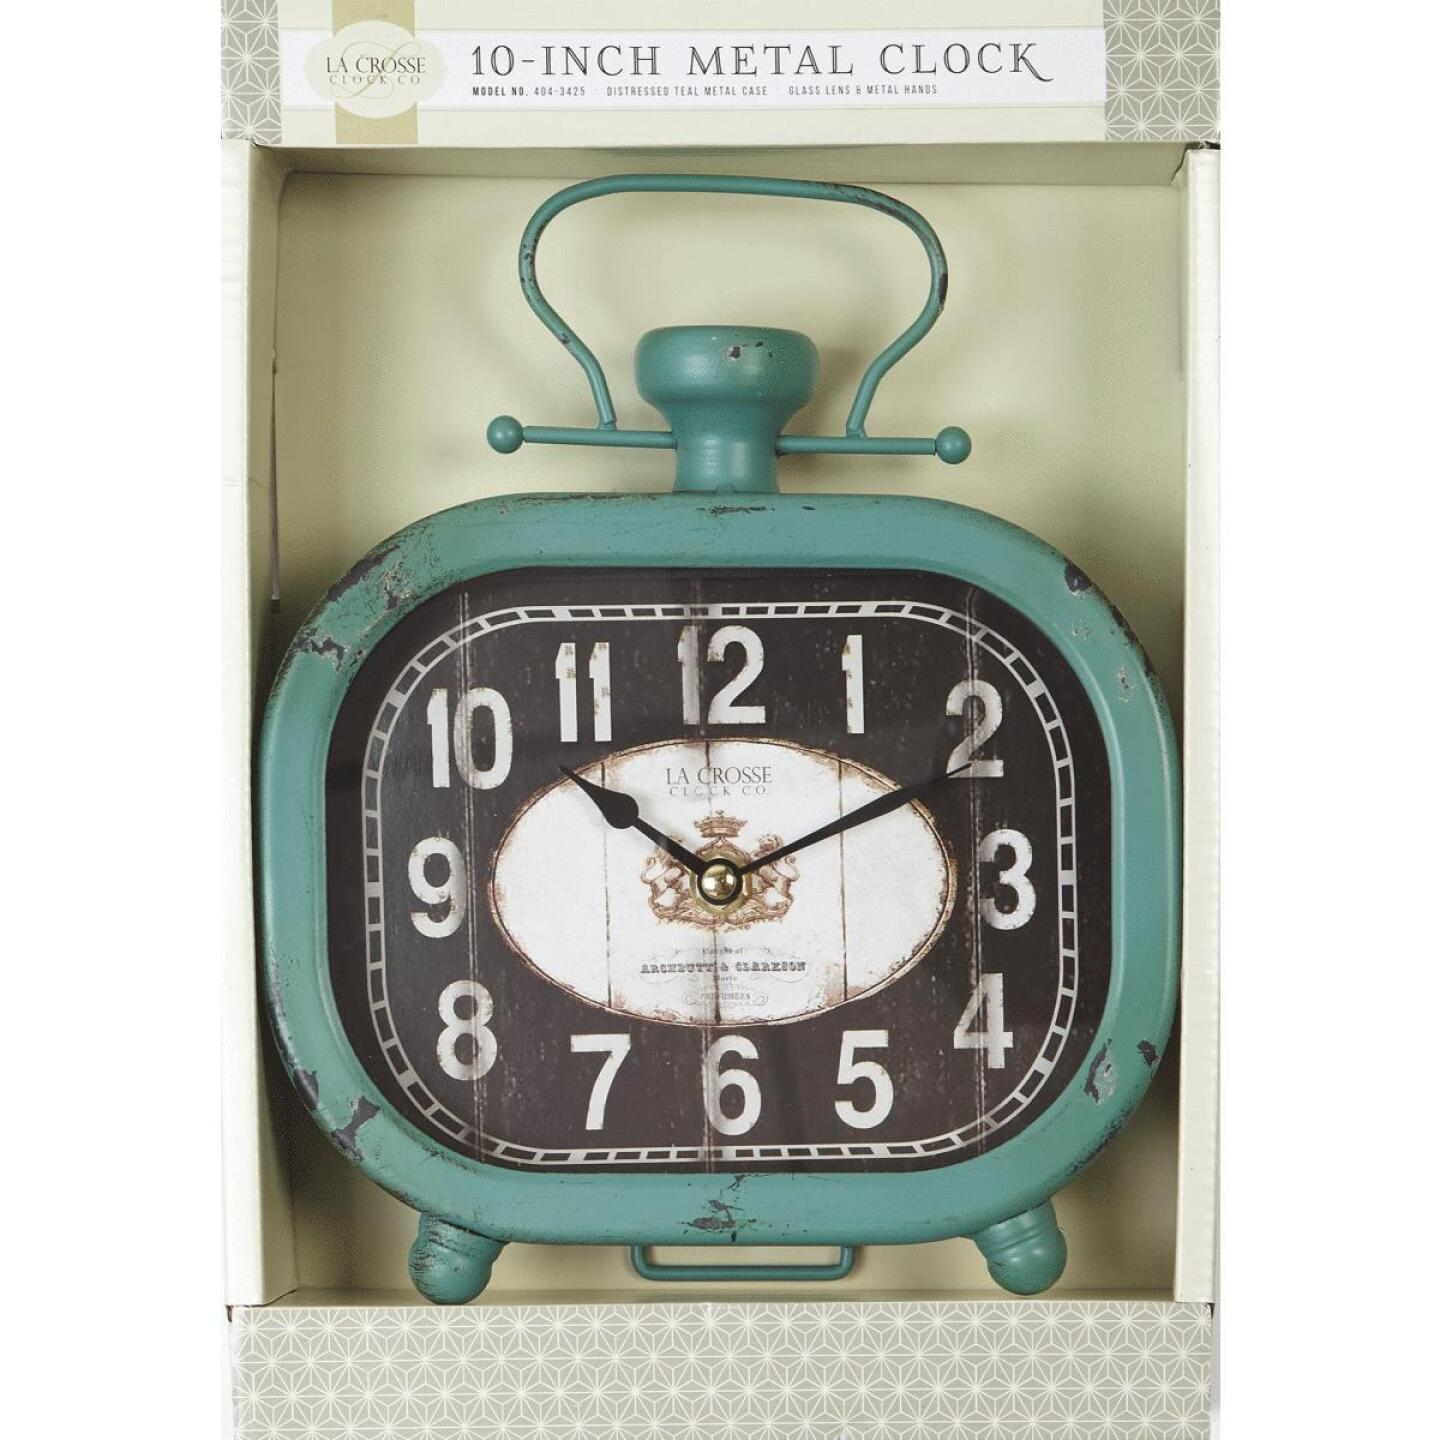 La Crosse Clock Analog Metal Battery Operated Clock Image 2